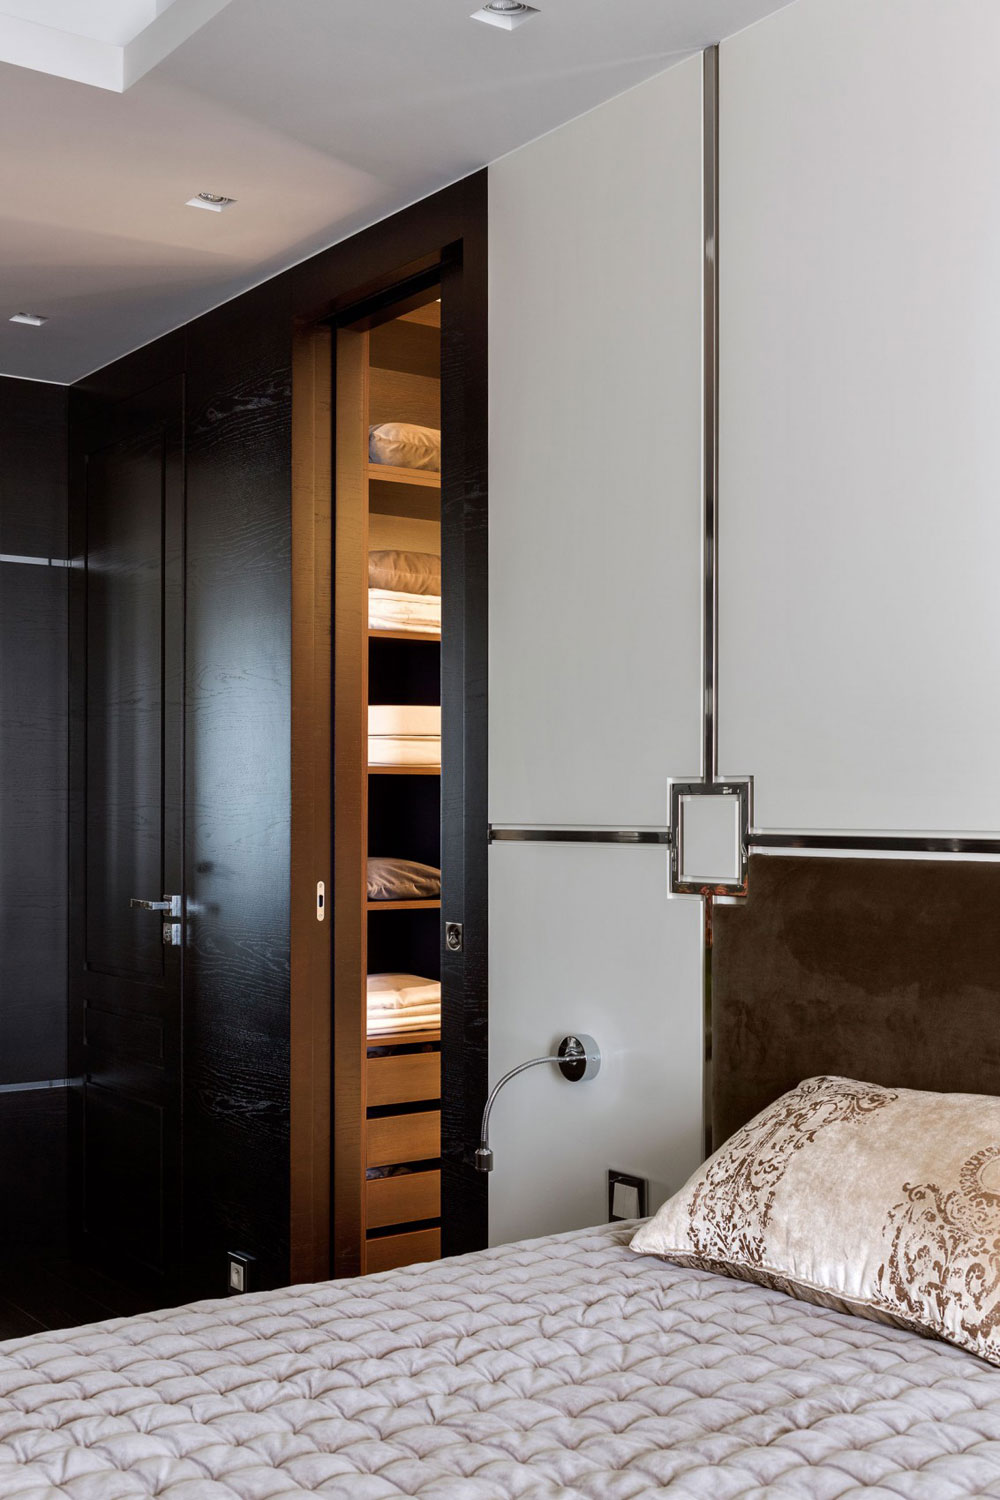 Apartment-with-the-look-and-feel-of-a-luxury-hotel-room-suite-12-Apartment-with-the-look-and-feel-of-a-luxury-hotel room-suite